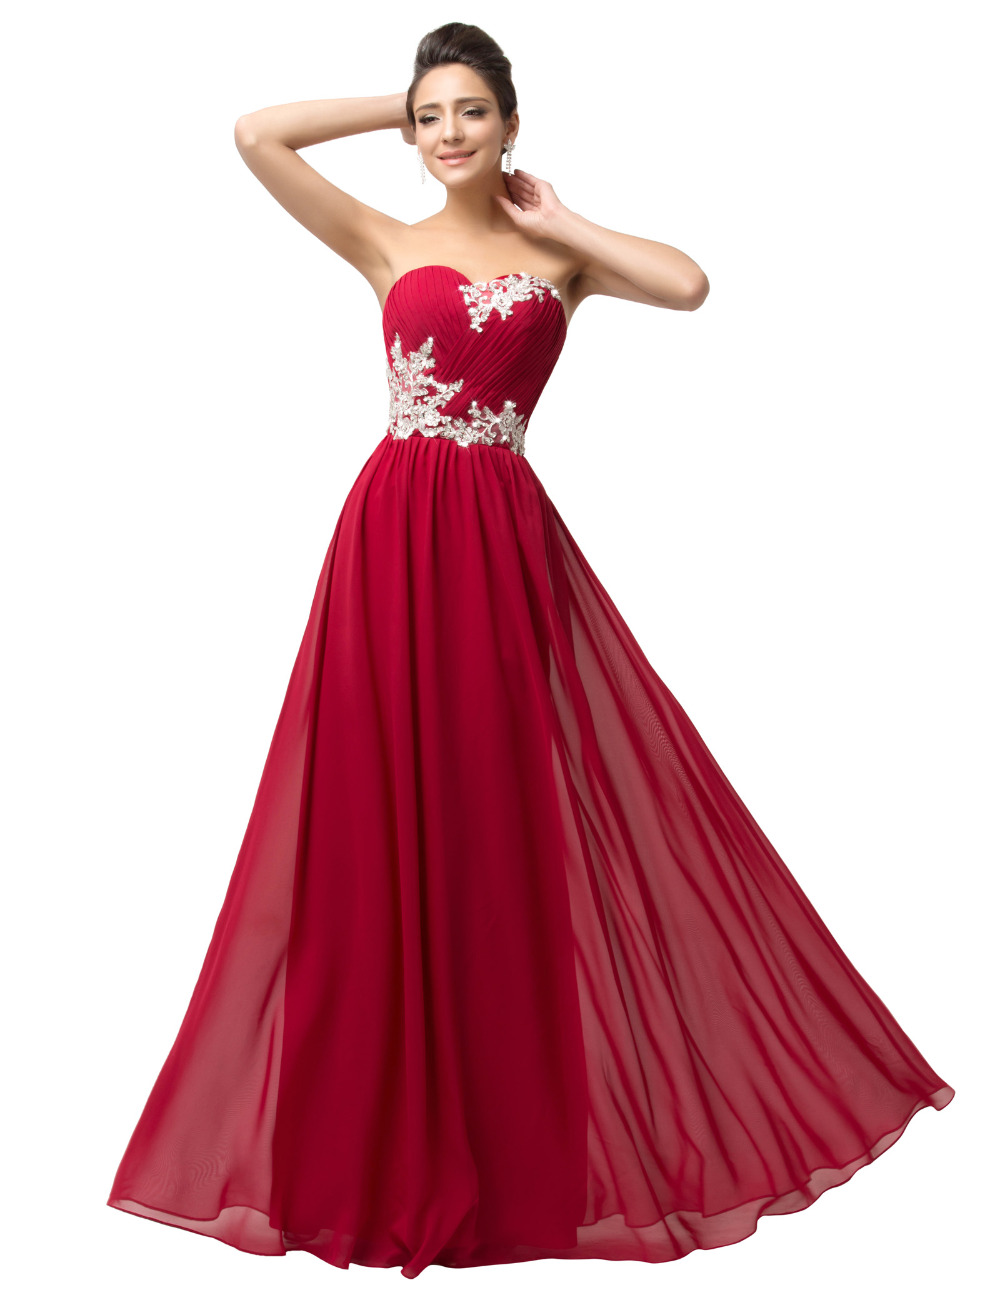 Popular Red Dress Prom-Buy Cheap Red Dress Prom lots from China ...